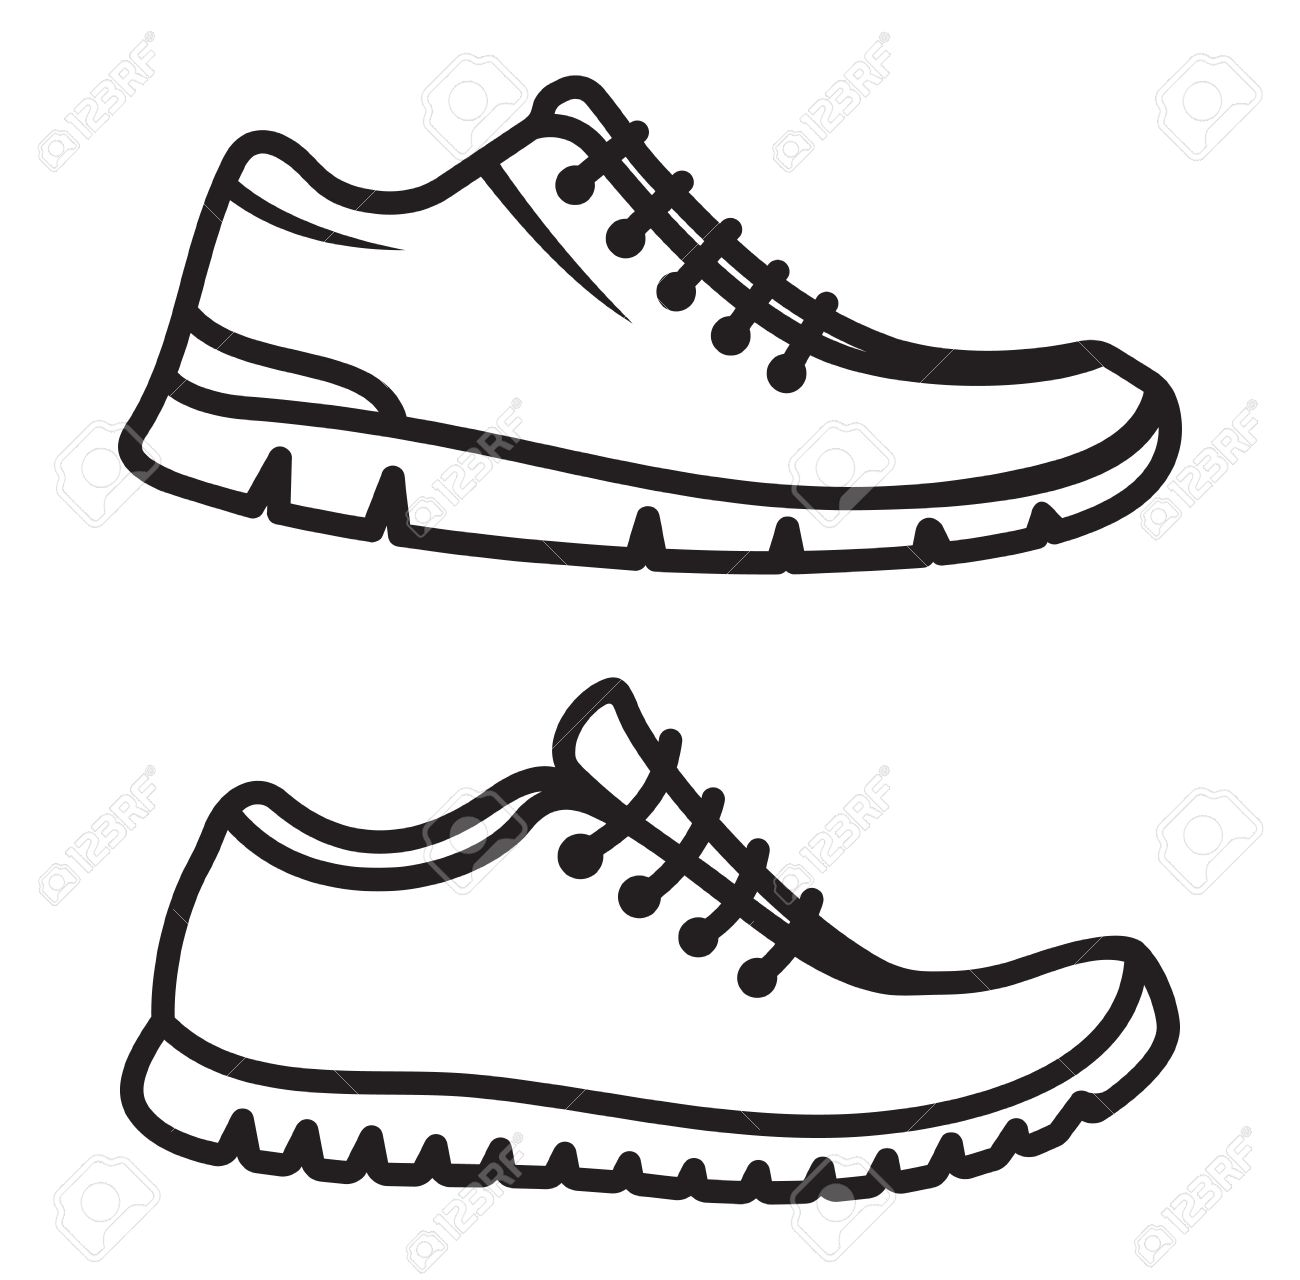 ClipartsVectorsAnd Running Shoes Icons Royalty Stock Free zqMpSUV